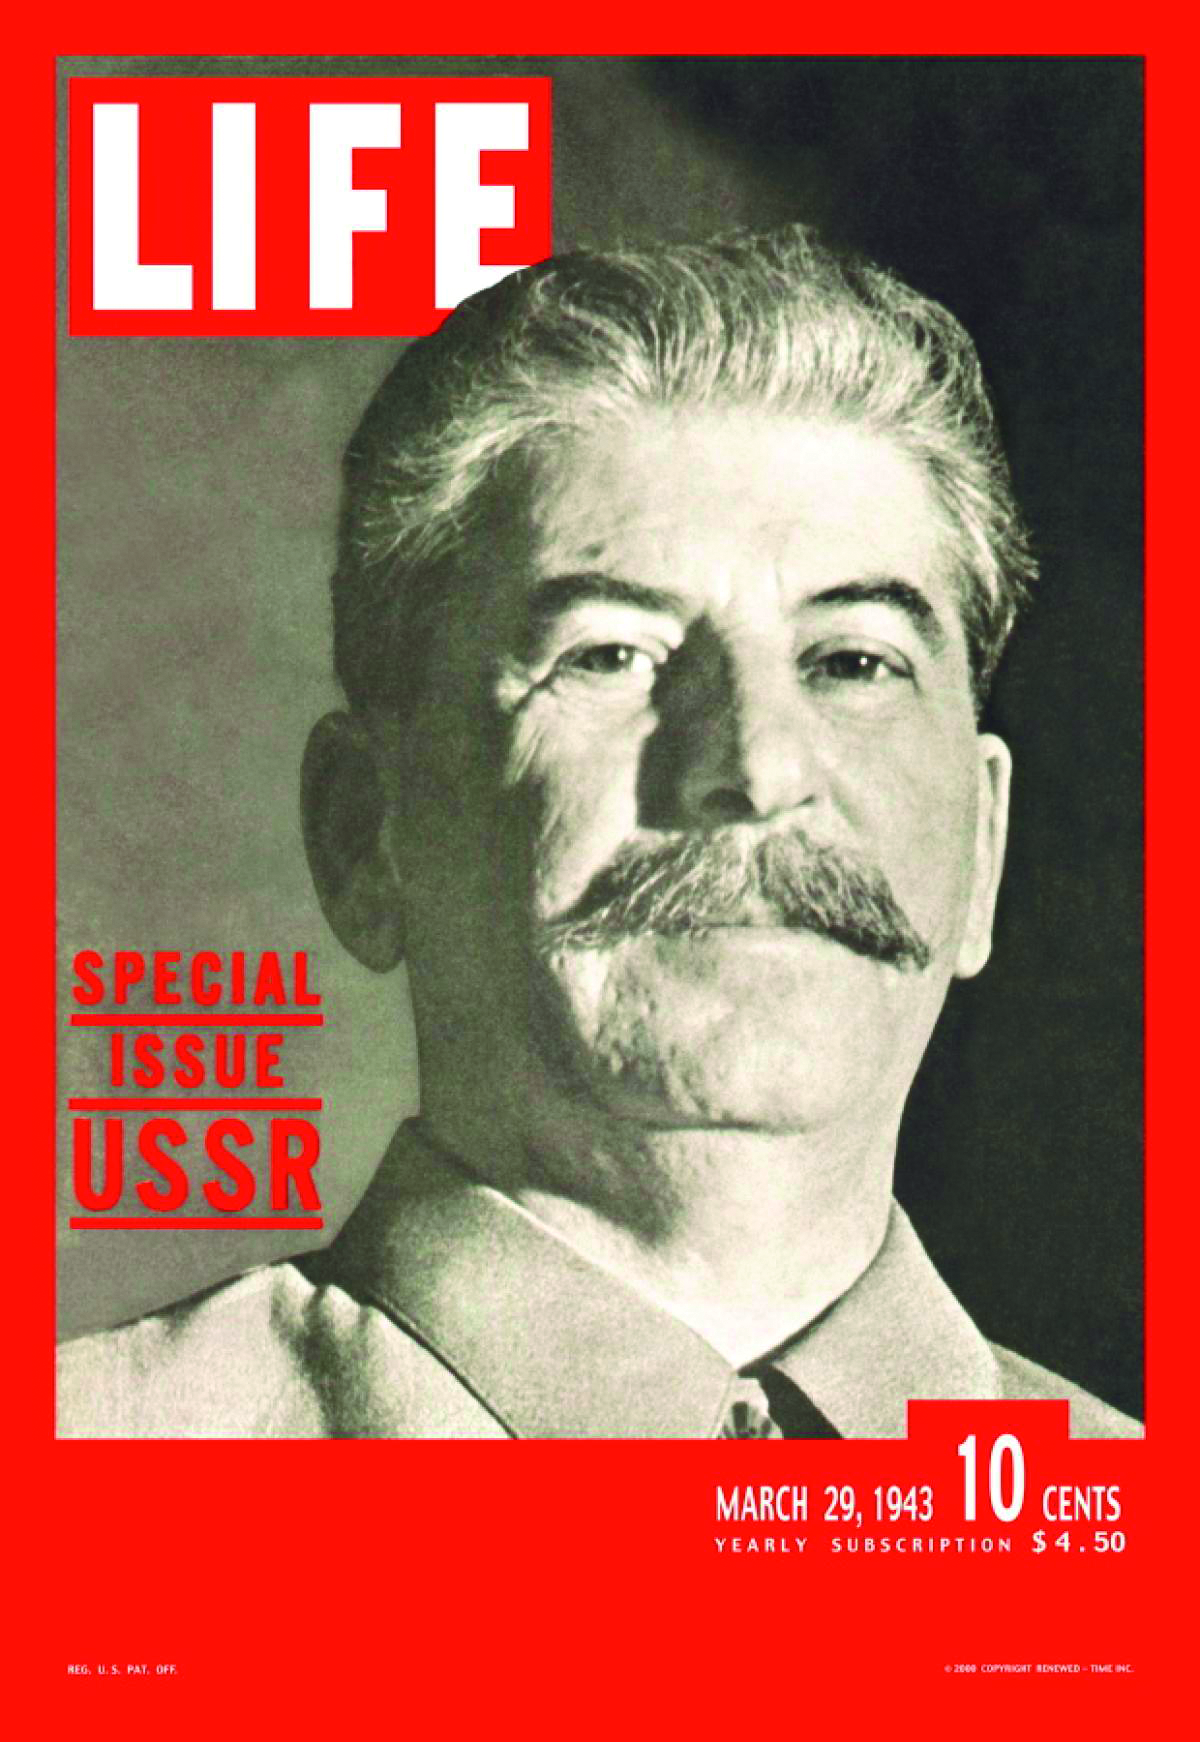 a critical analysis of the tyrannical rule of joseph stalin in the ussr describing pollutants and th